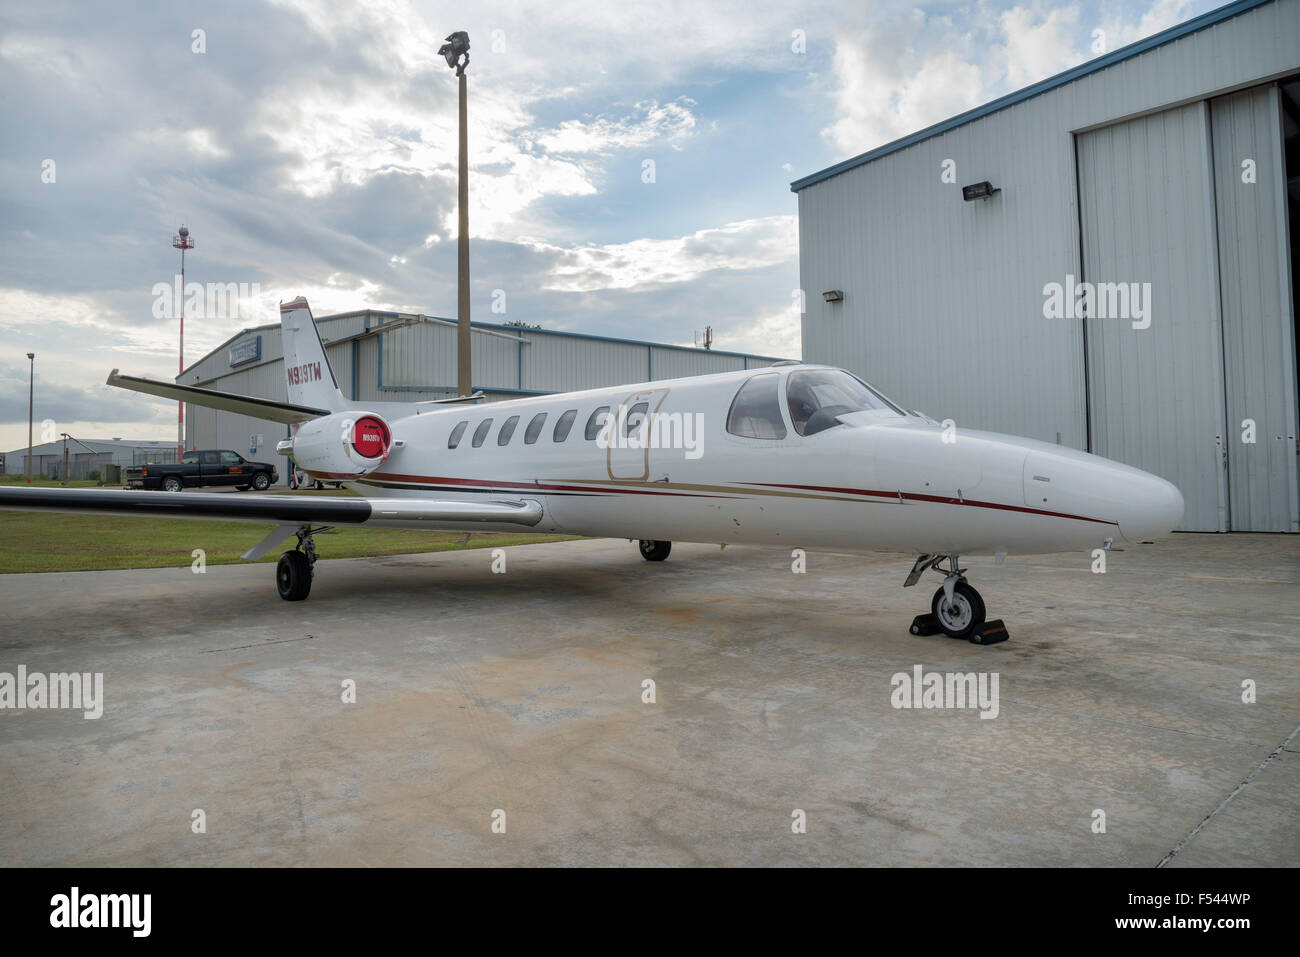 A small jet aircraft parked at a local general aviation air service airport in Gainesville, Florida. - Stock Image